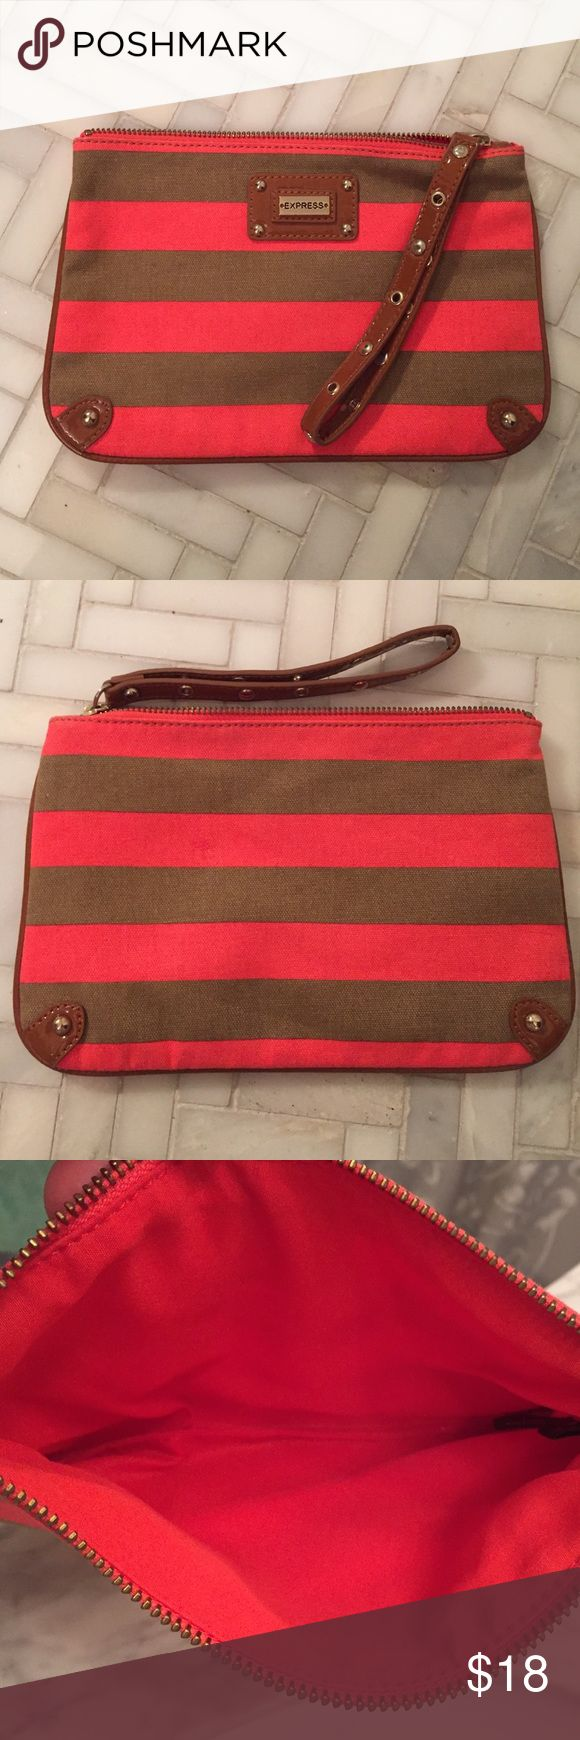 Striped Wristlet Clutch Taupe & Coral Colors are as pictured. Used around 3 times. Good as new! Bags Clutches & Wristlets